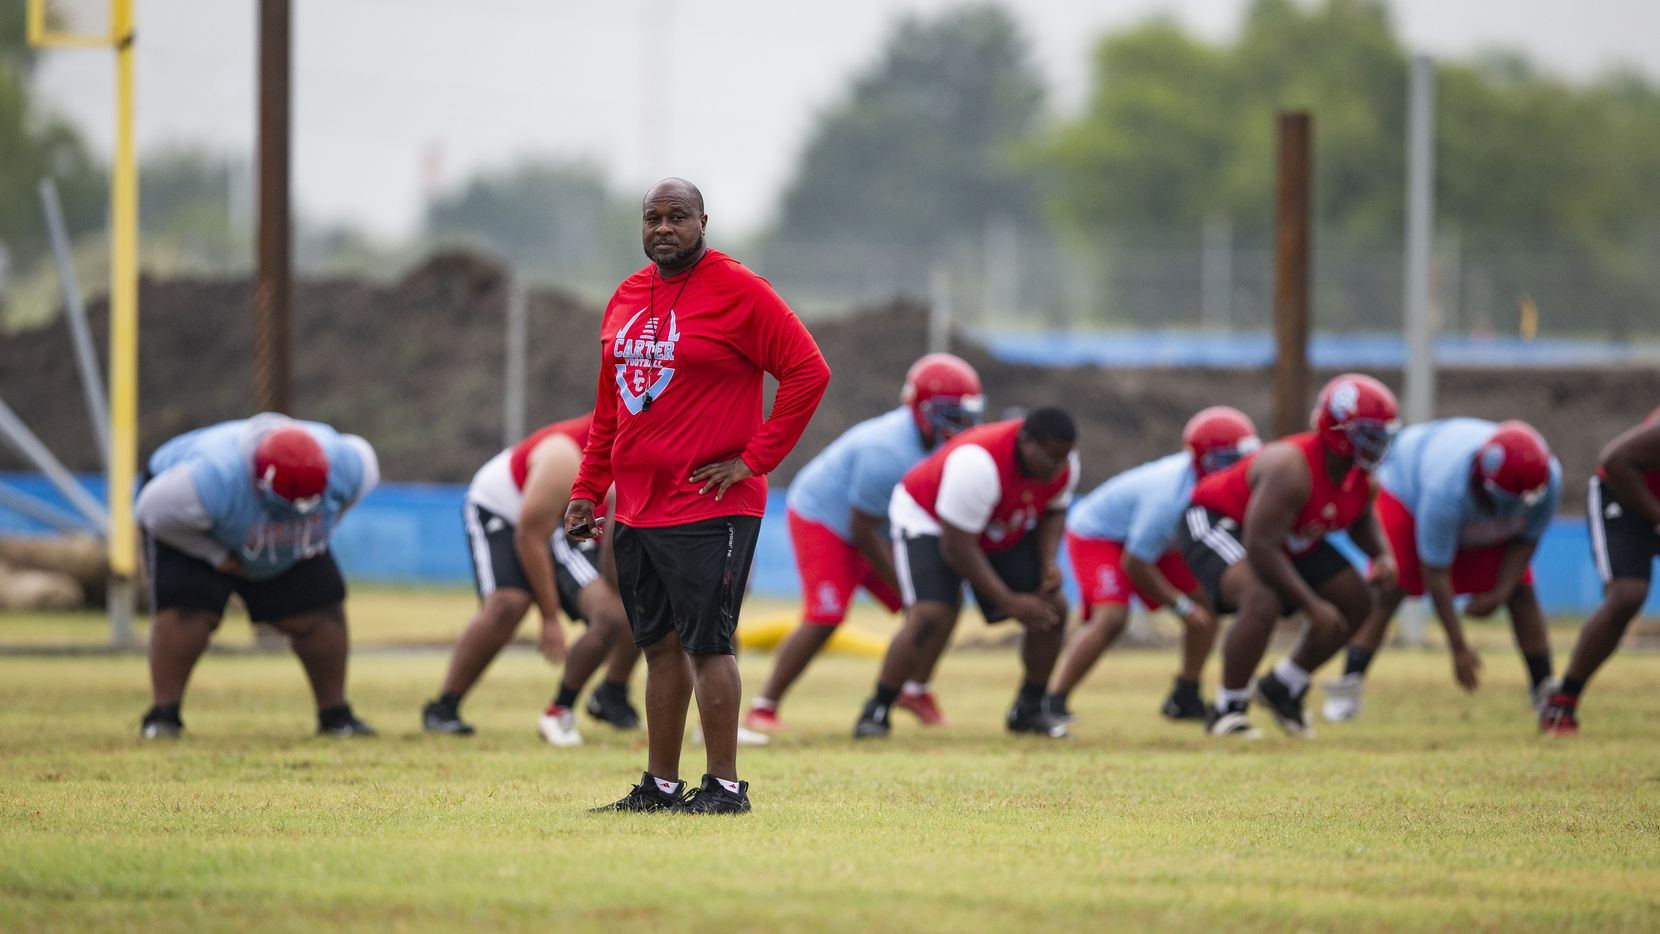 Carter head coach Spencer Gilbert watches his team during the first day of football practice at Carter High School in Dallas, Monday, August 2, 2021. (Brandon Wade/Special Contributor)